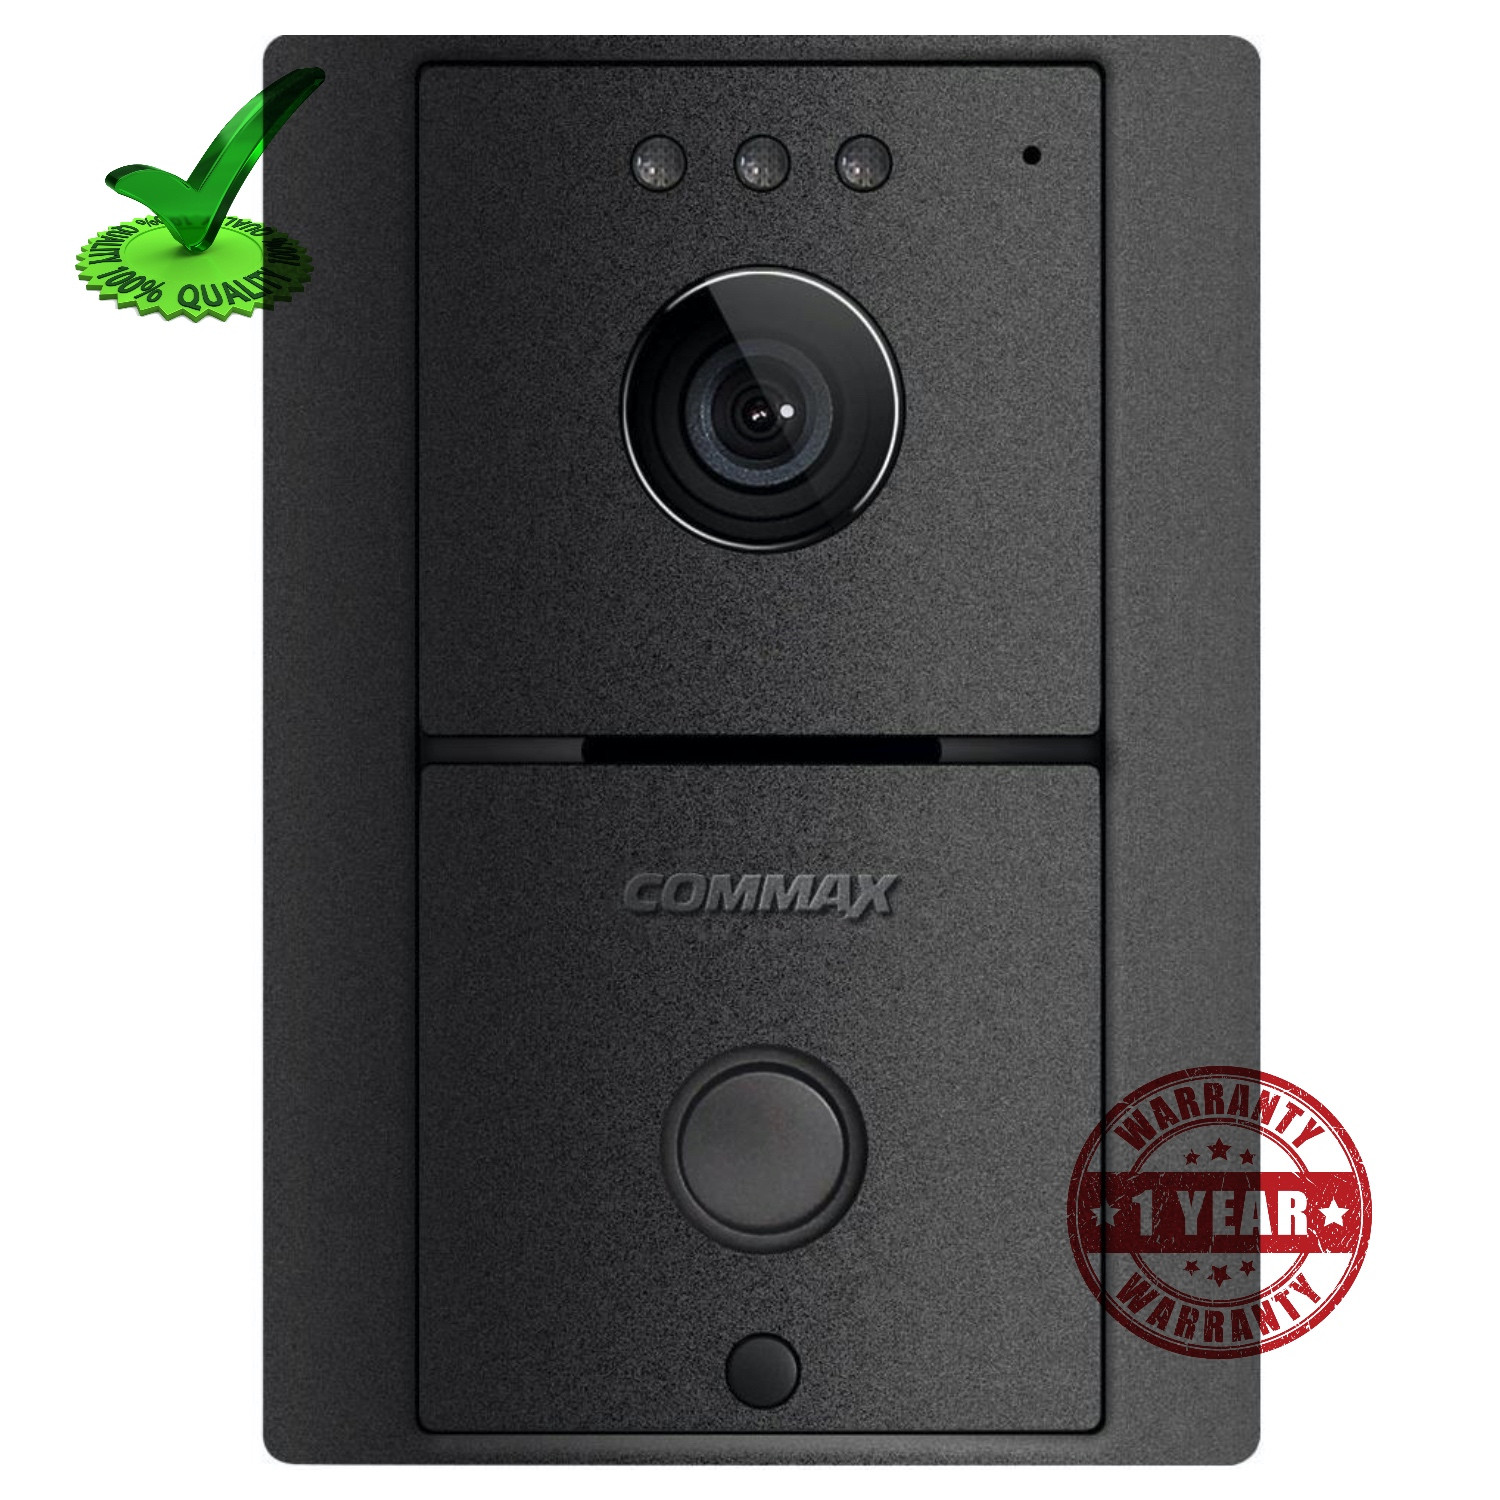 Commax CDV-43K Video Door Phone